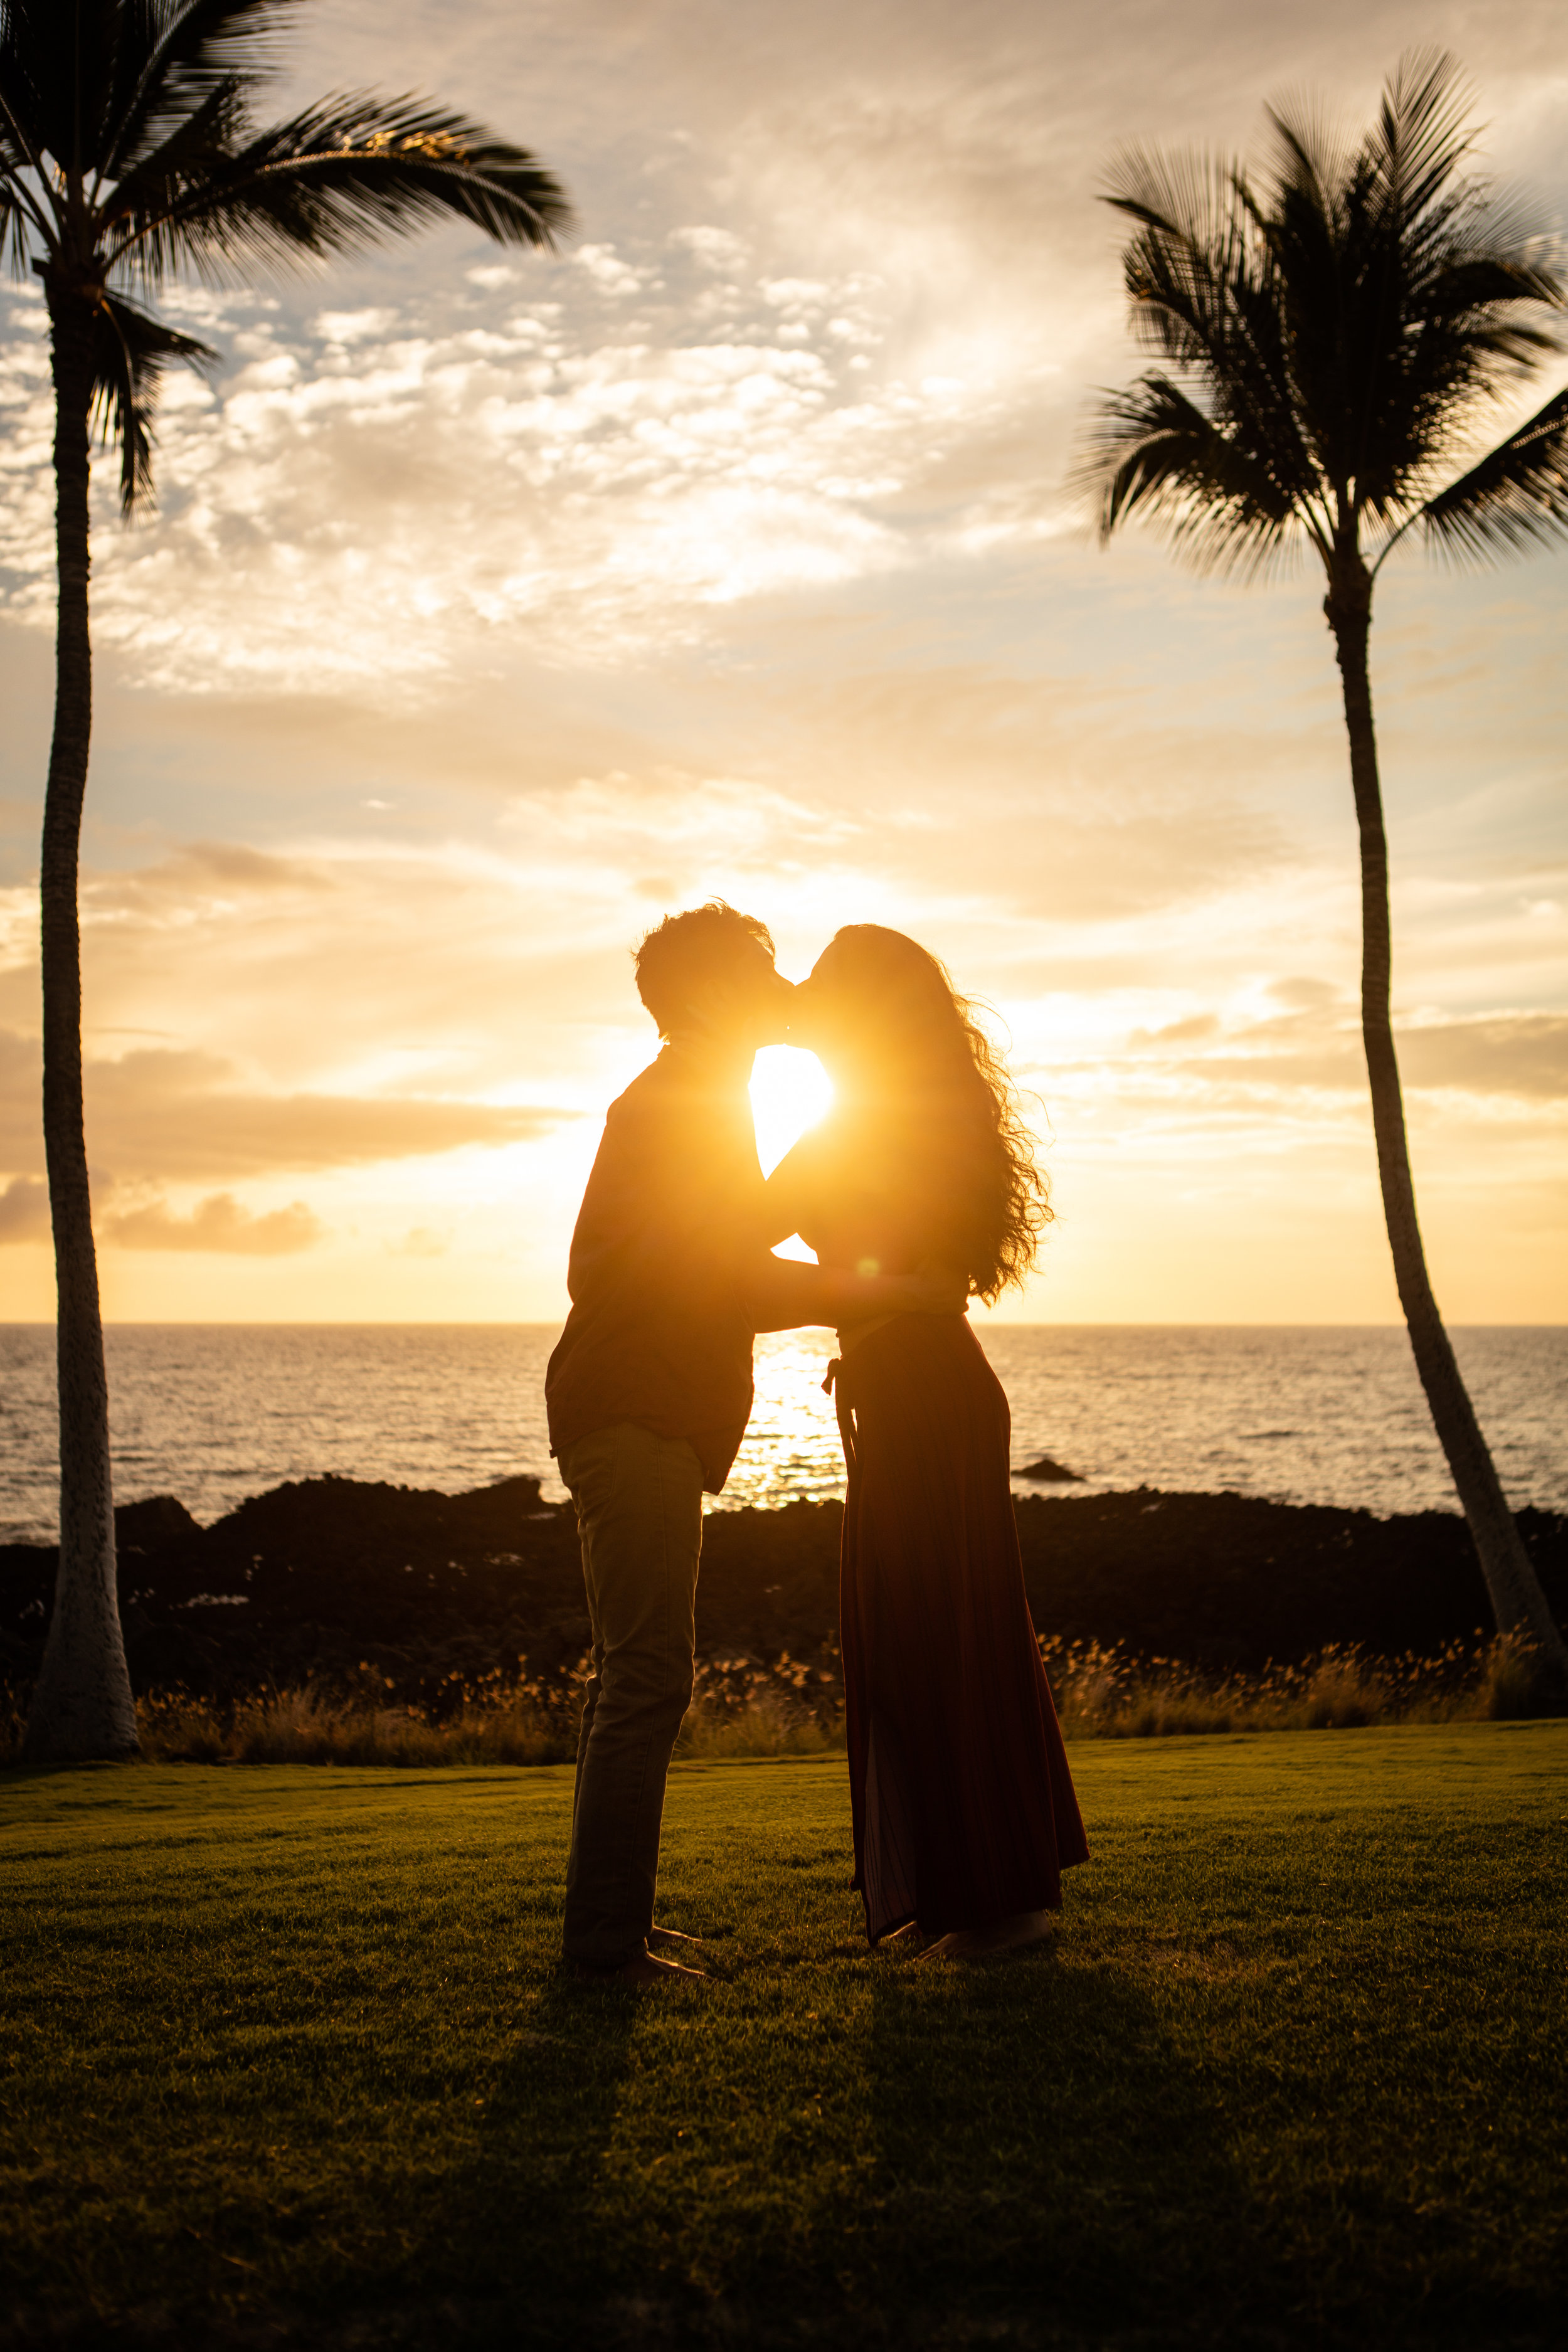 Model: @annelisegibson & @christian.bon  Camera setup: Canon 5DS with 24-70mm f2.8  Location: Kona Hawaii